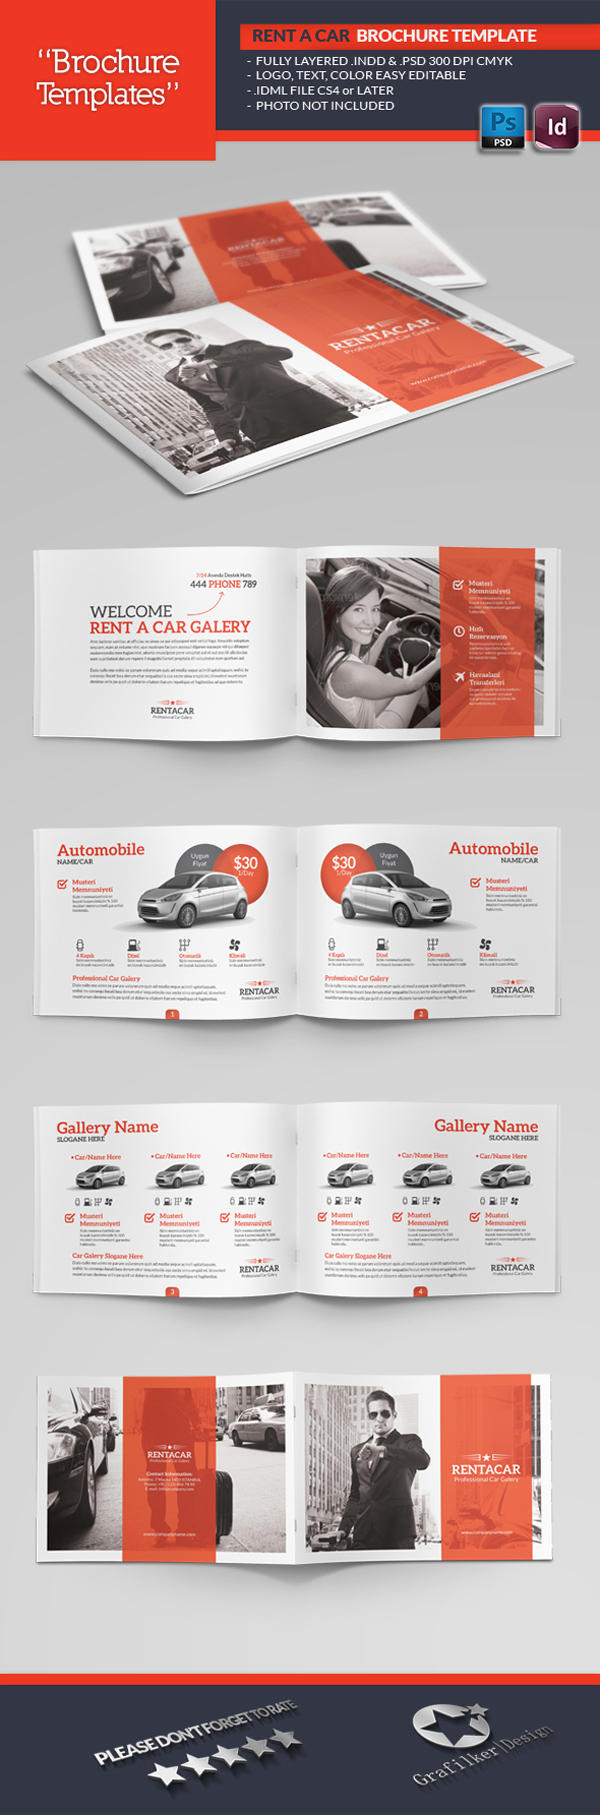 Professional brochure templates by grafilker on envato studio for Professional brochure templates free download